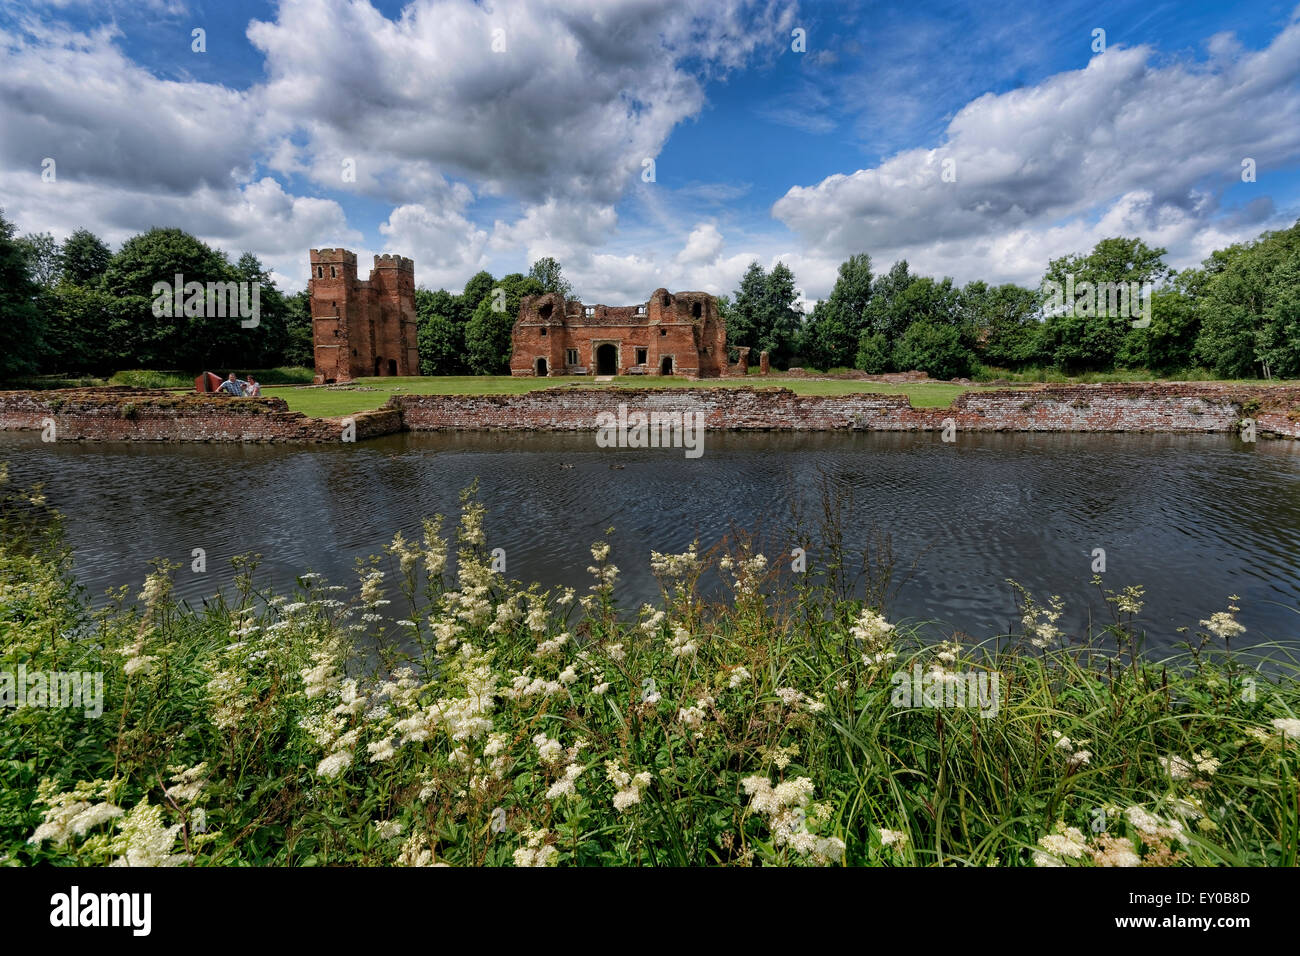 Kirby Muxloe Castle is an unfinished moated 15th century fortified manor house in Kirby Muxloe, Leicestershire, - Stock Image